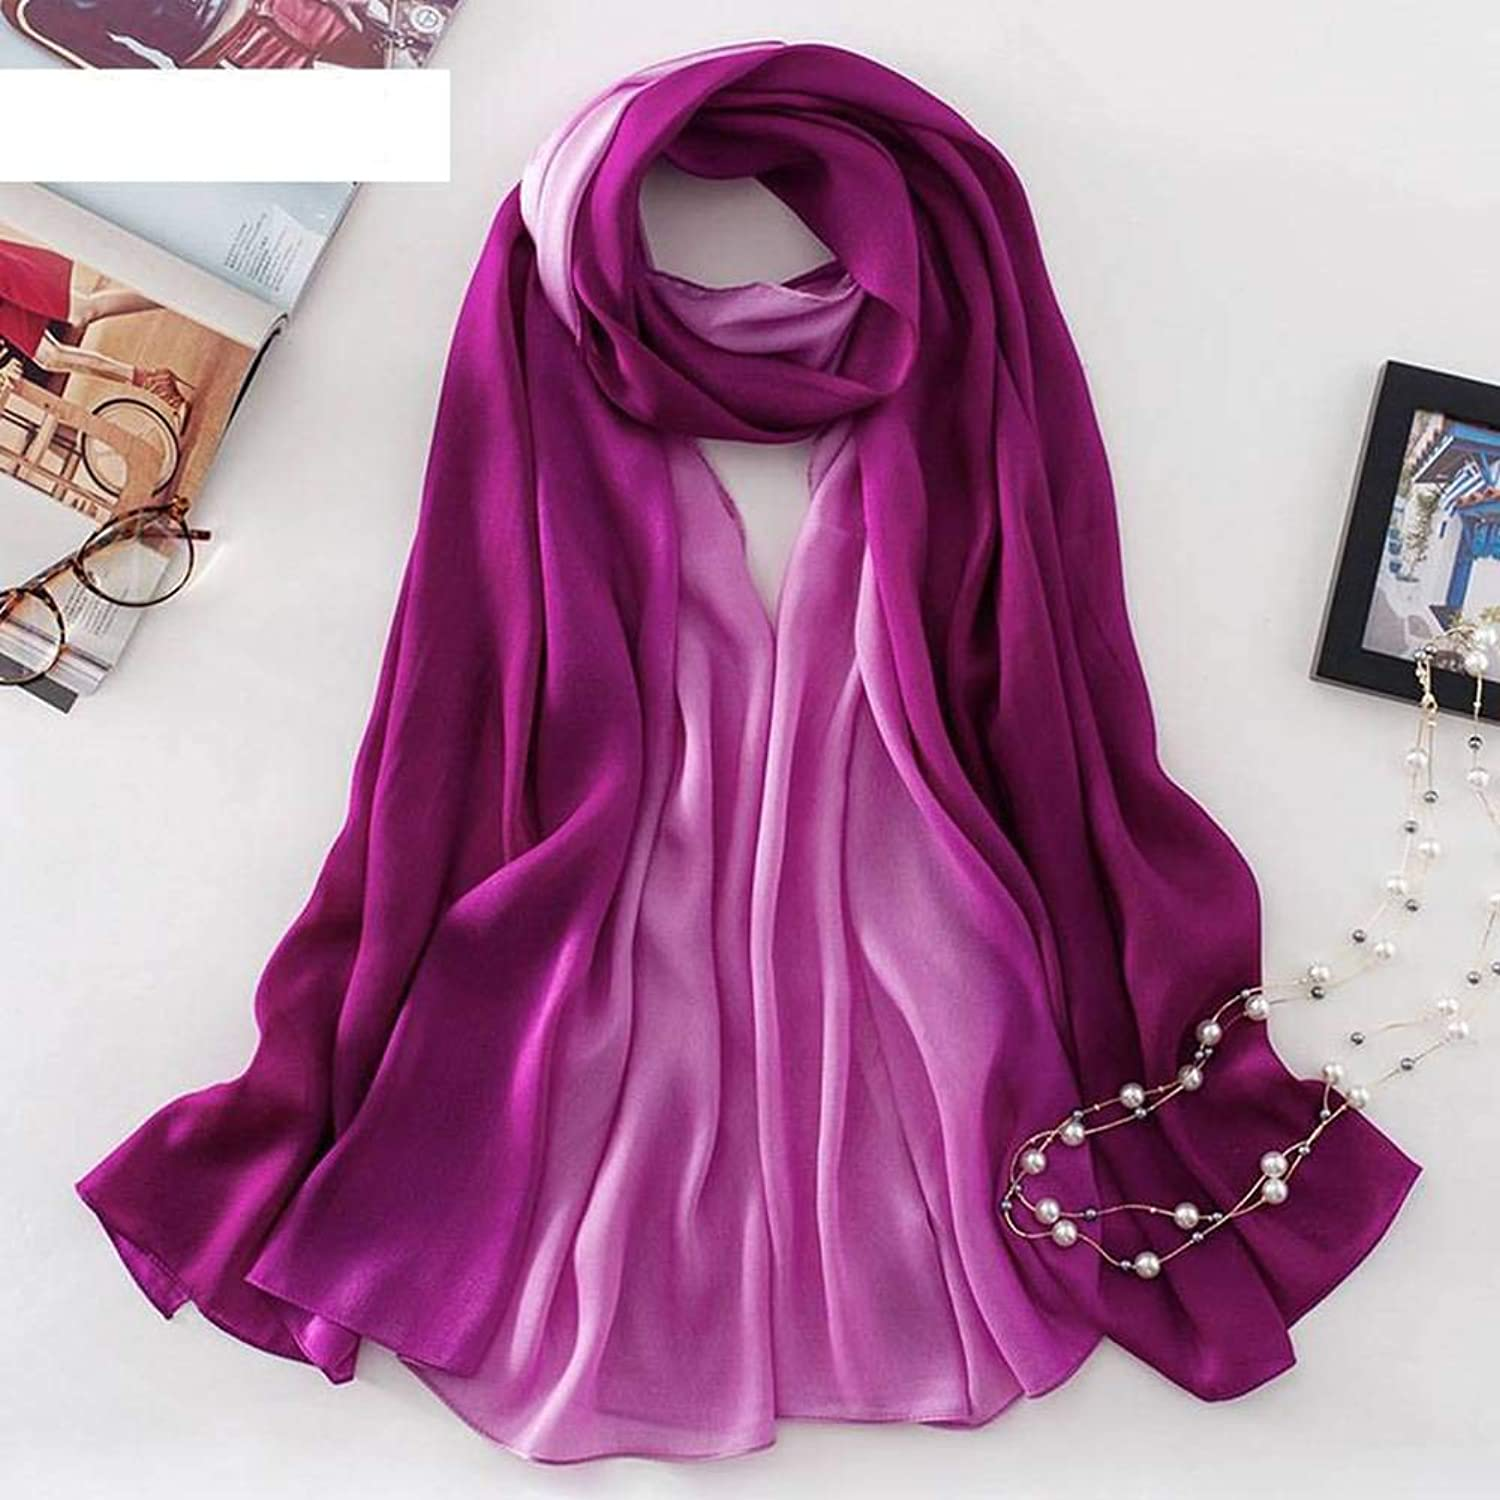 WJS Elegant Ladies Gradient color Polyester Fiber Female Decoration Pure color Medium Long Autumn and Winter Outdoor MultiFunctional Fgreyion Trend Wild Warm Shawl Scarf Gift